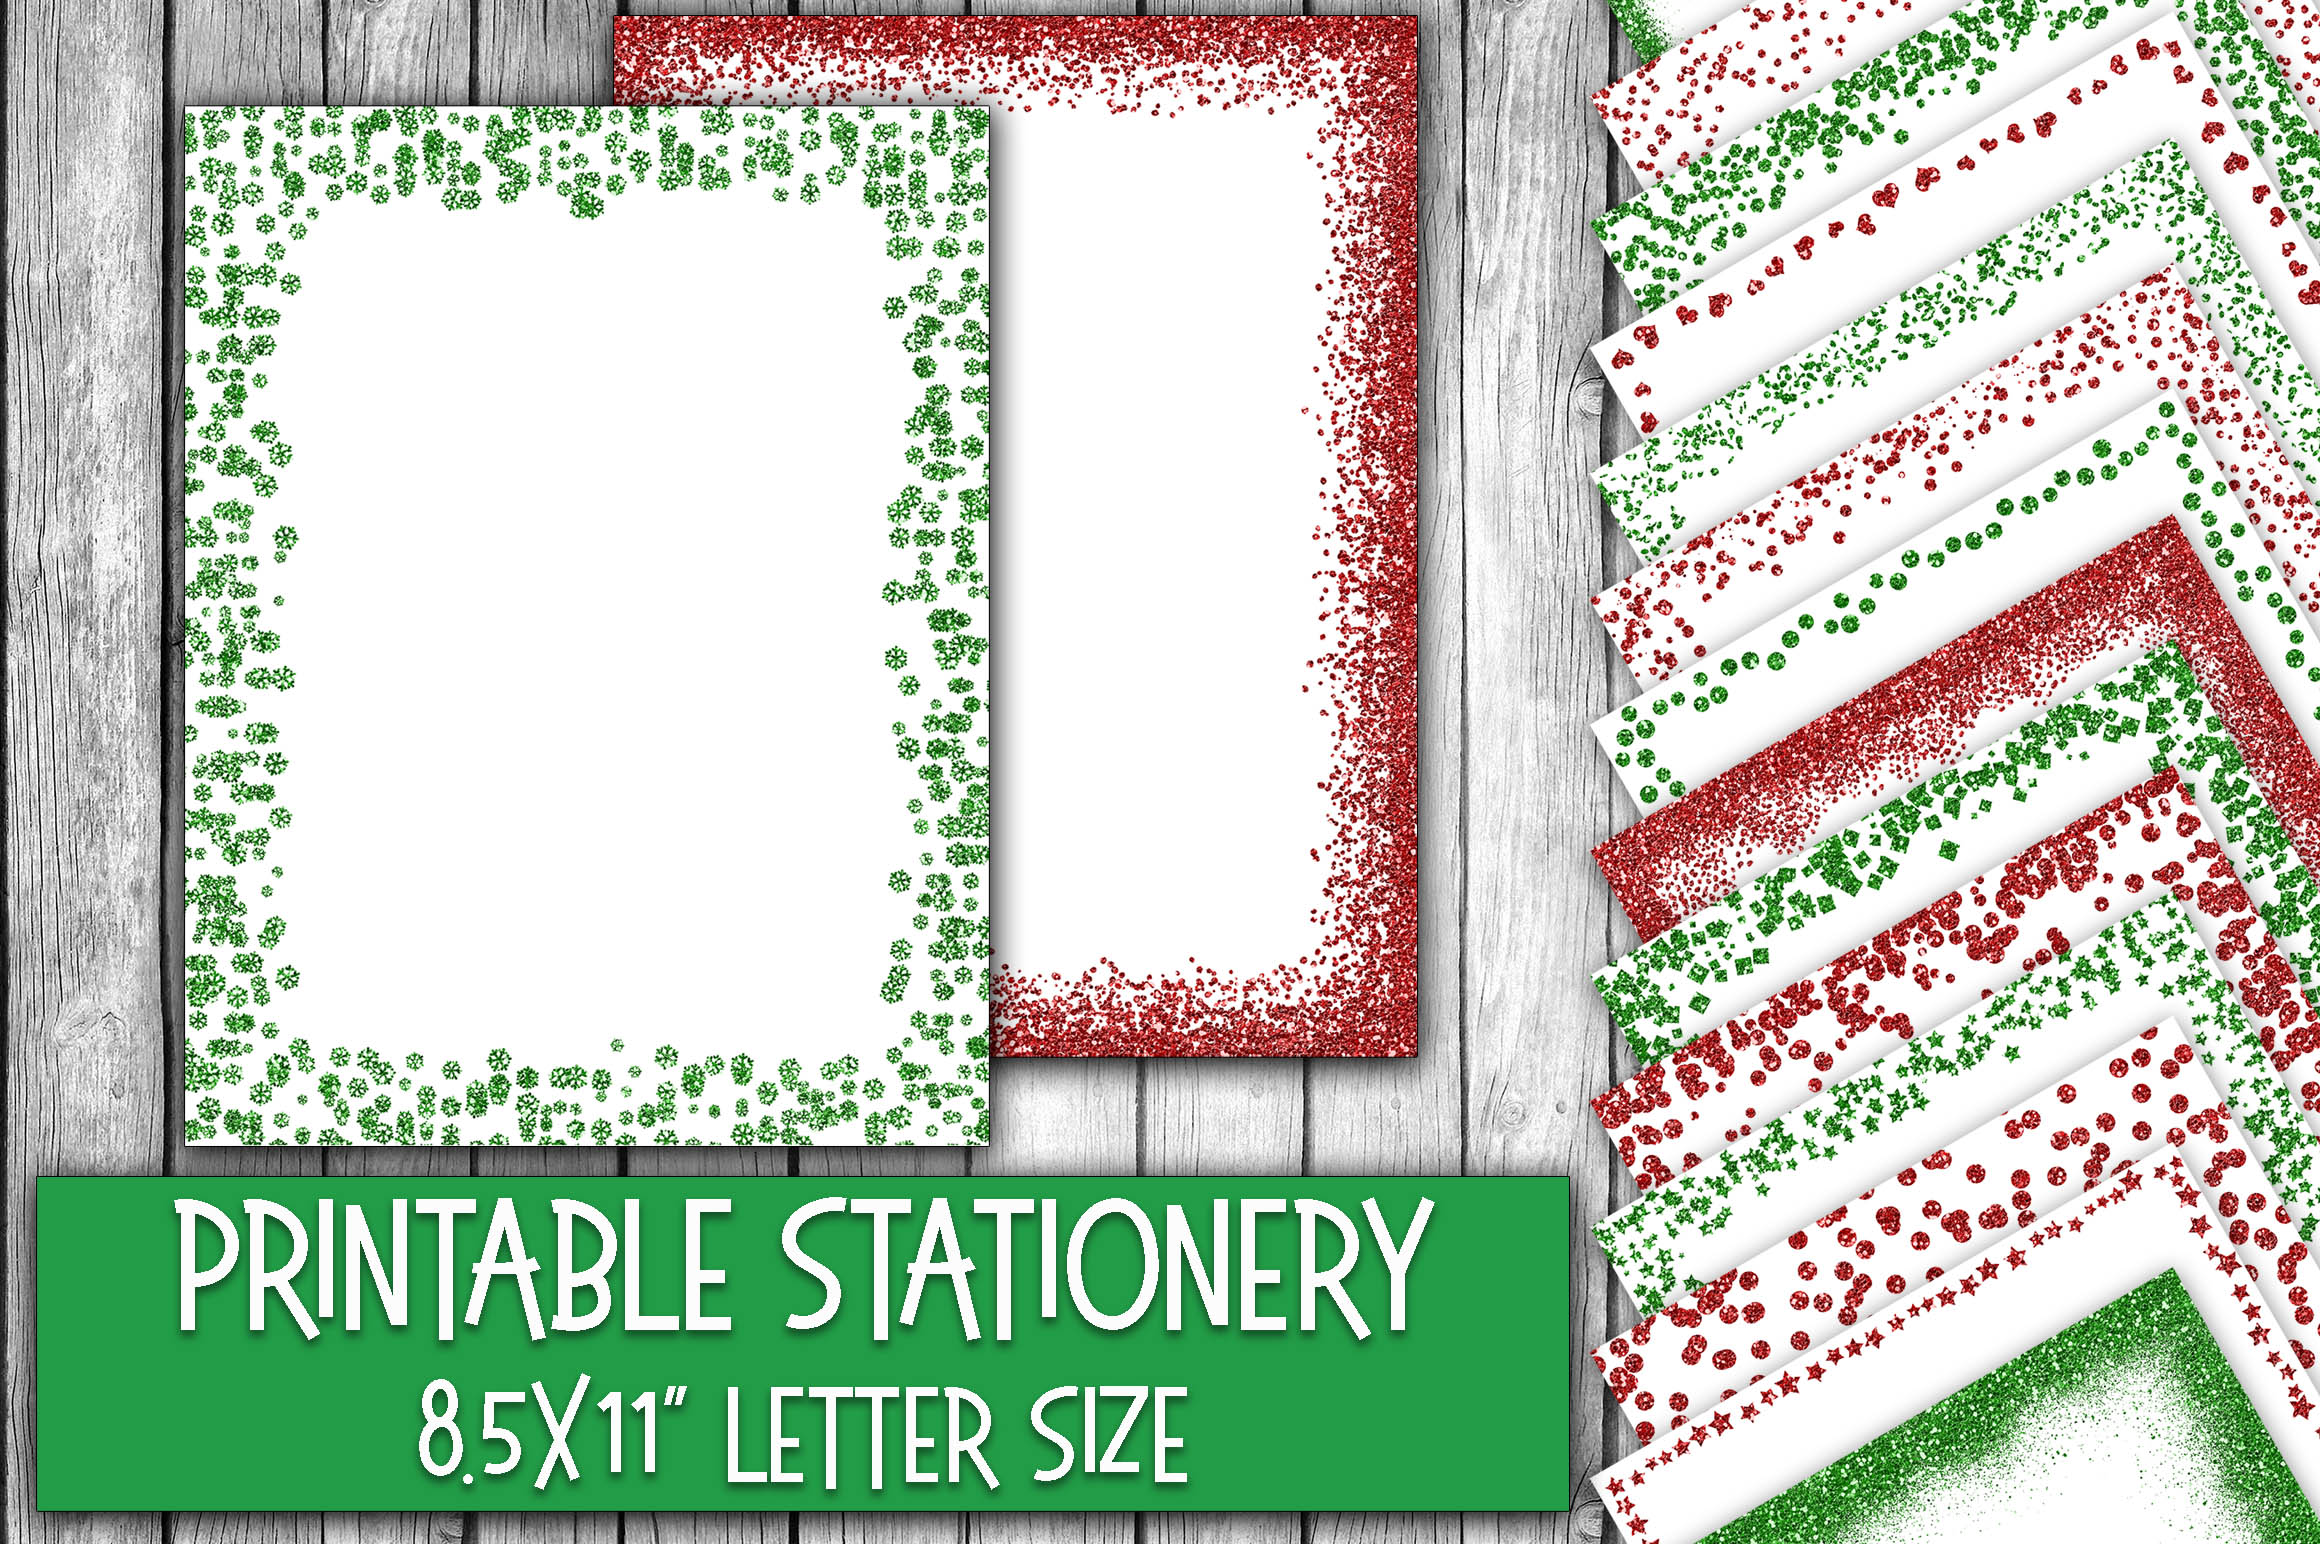 Christmas Stationery - Glitter Borders - Digital Paper Graphic Backgrounds By oldmarketdesigns